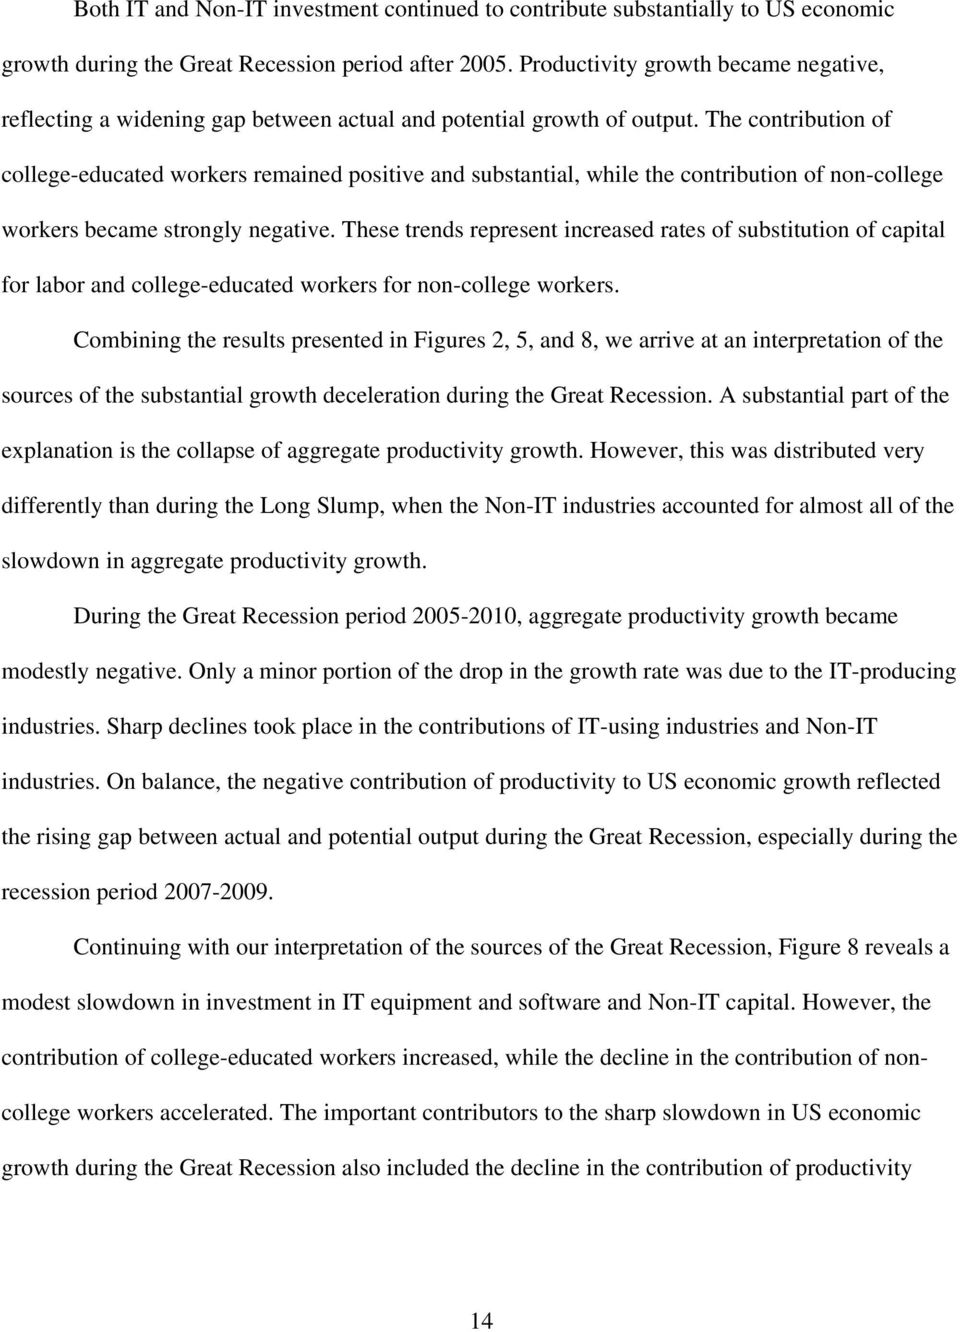 The contribution of college-educated workers remained positive and substantial, while the contribution of non-college workers became strongly negative.